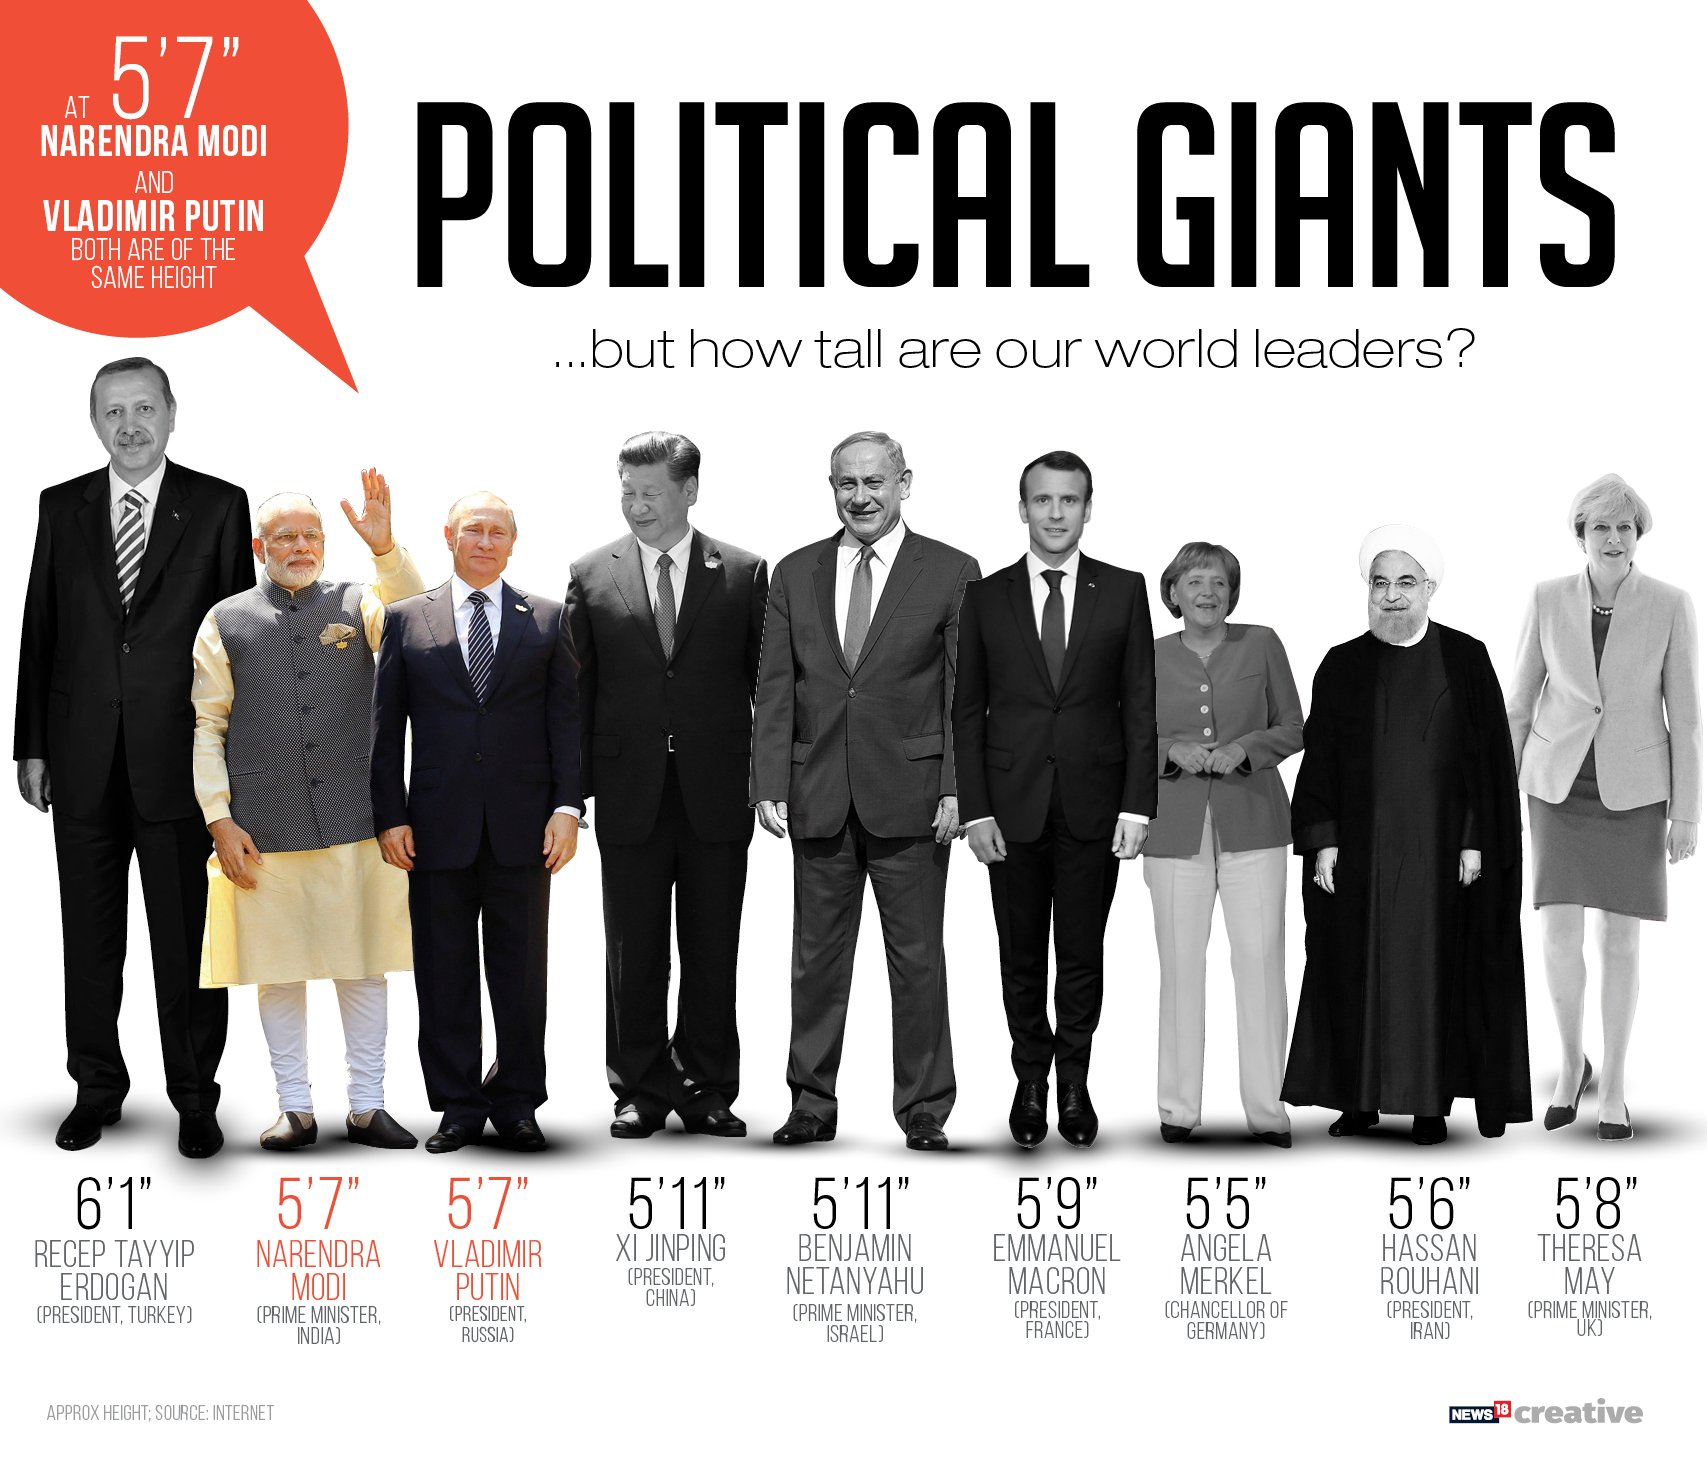 News18 Graphics On Twitter At 5 7 Narendramodi And Vladimirputin Are Of The Same Height How Tall Are They In Comparison To Some Other World Leader Who Visited India In Recent Years Putininindia